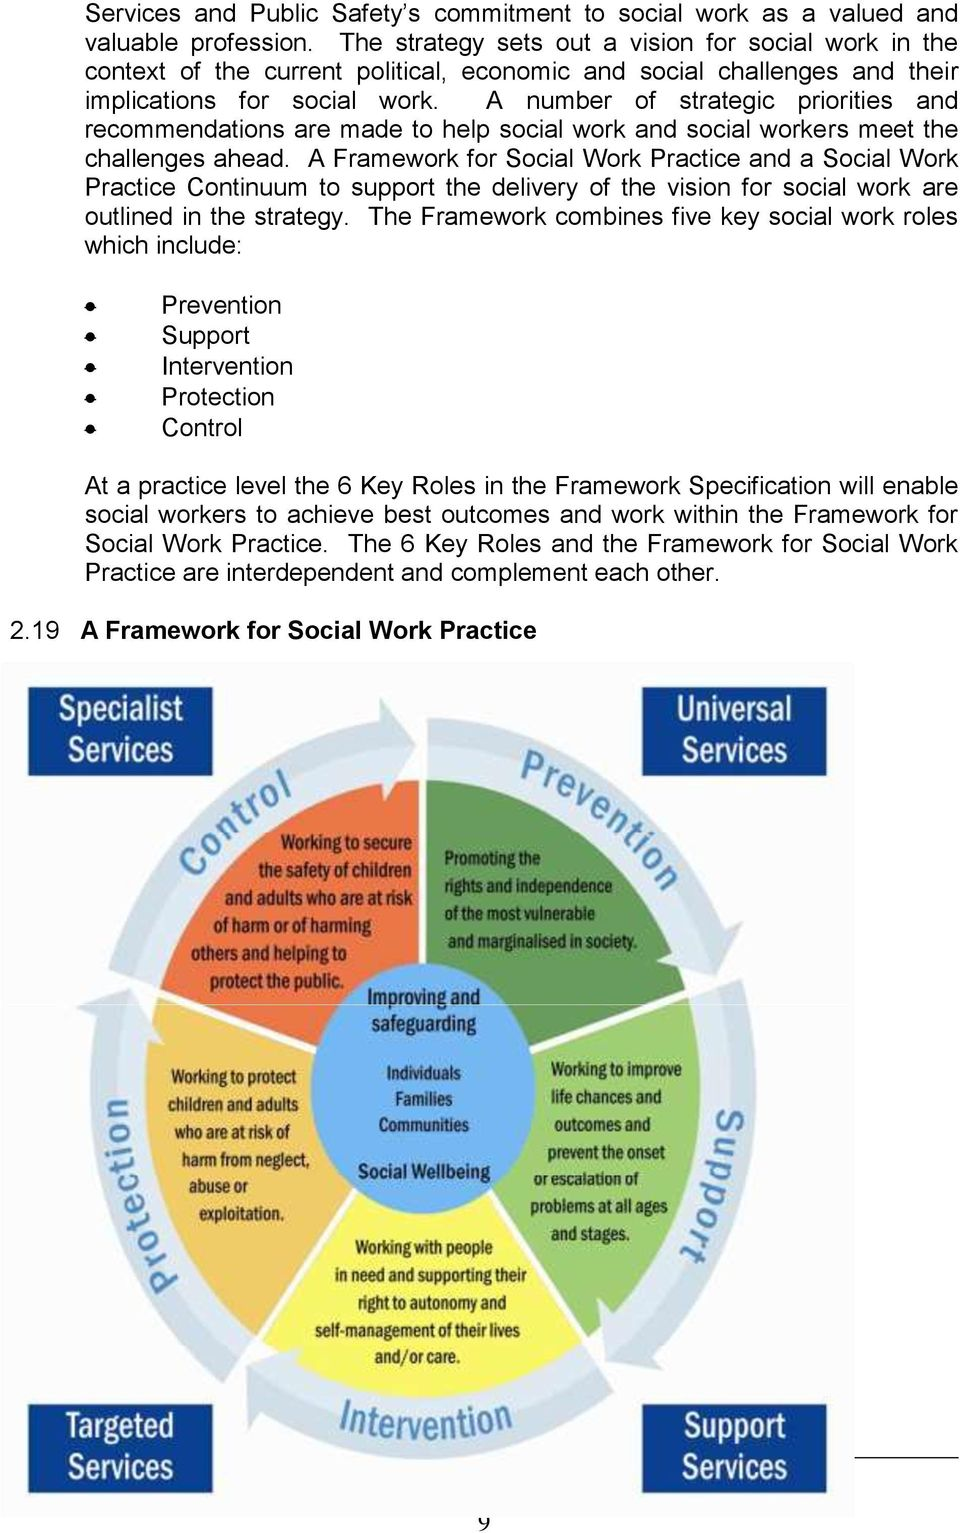 A number of strategic priorities and recommendations are made to help social work and social workers meet the challenges ahead.